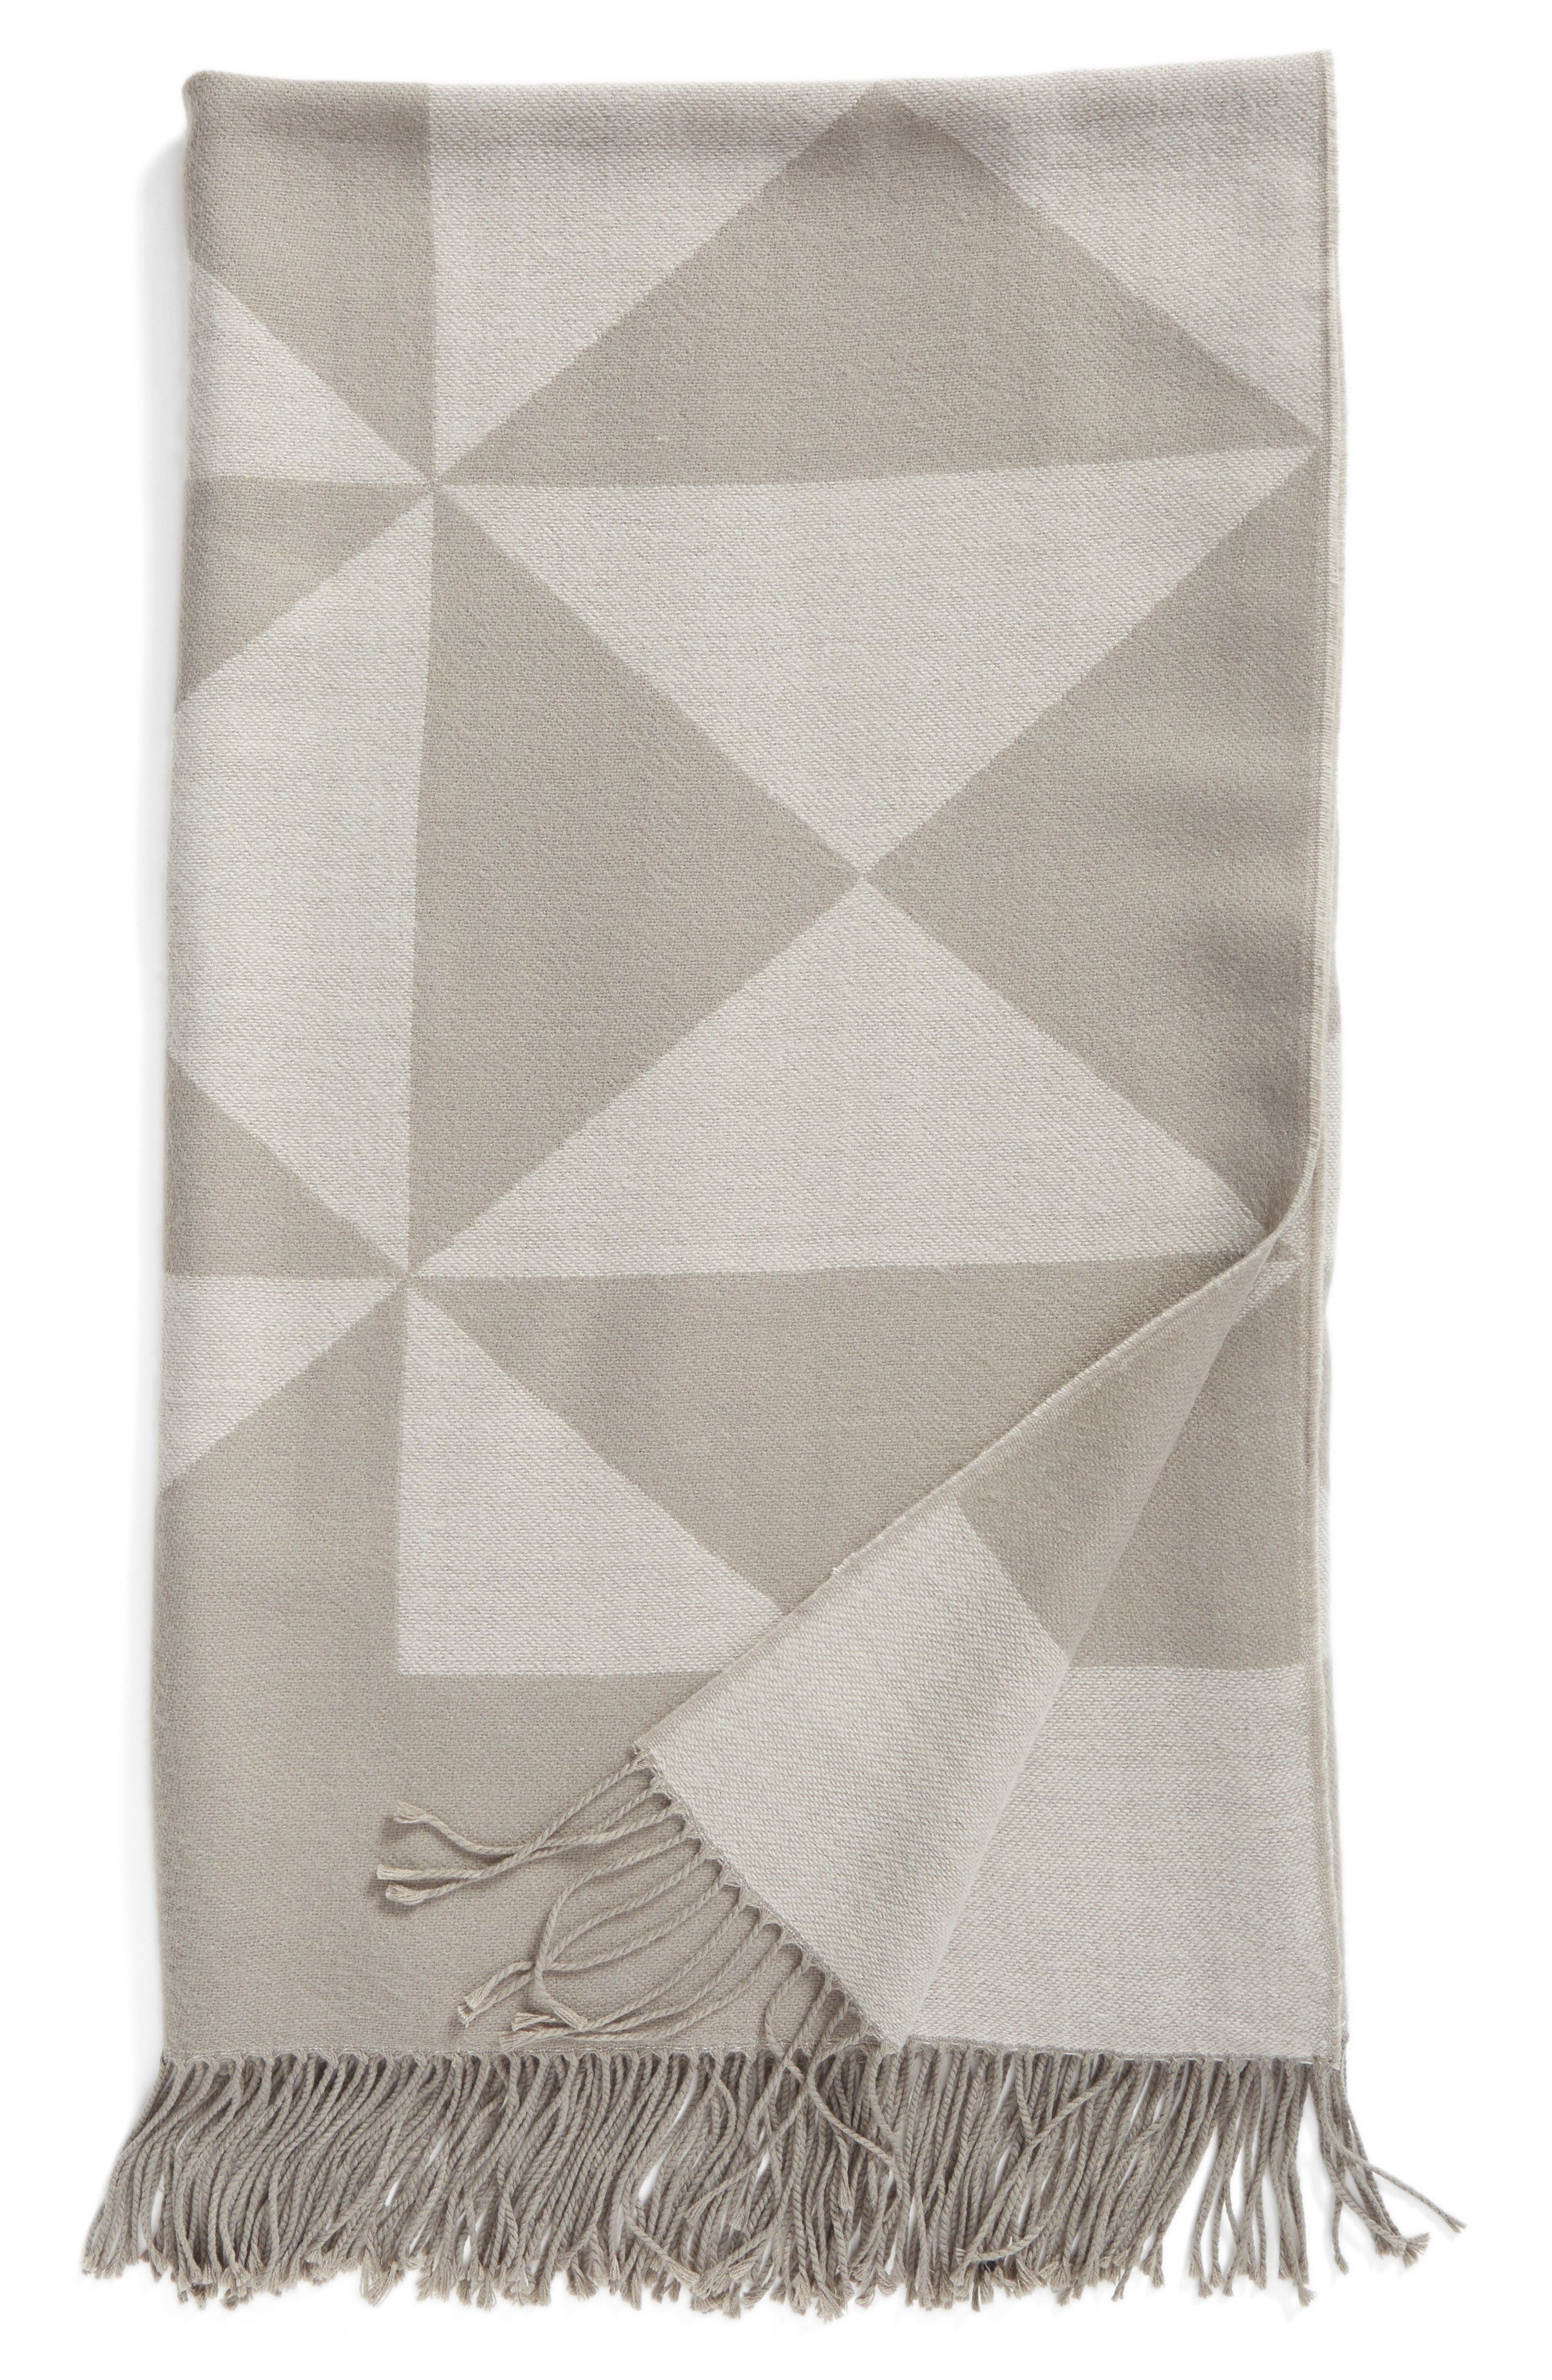 Nordstrom at Home Diamond Jacquard Throw Blanket